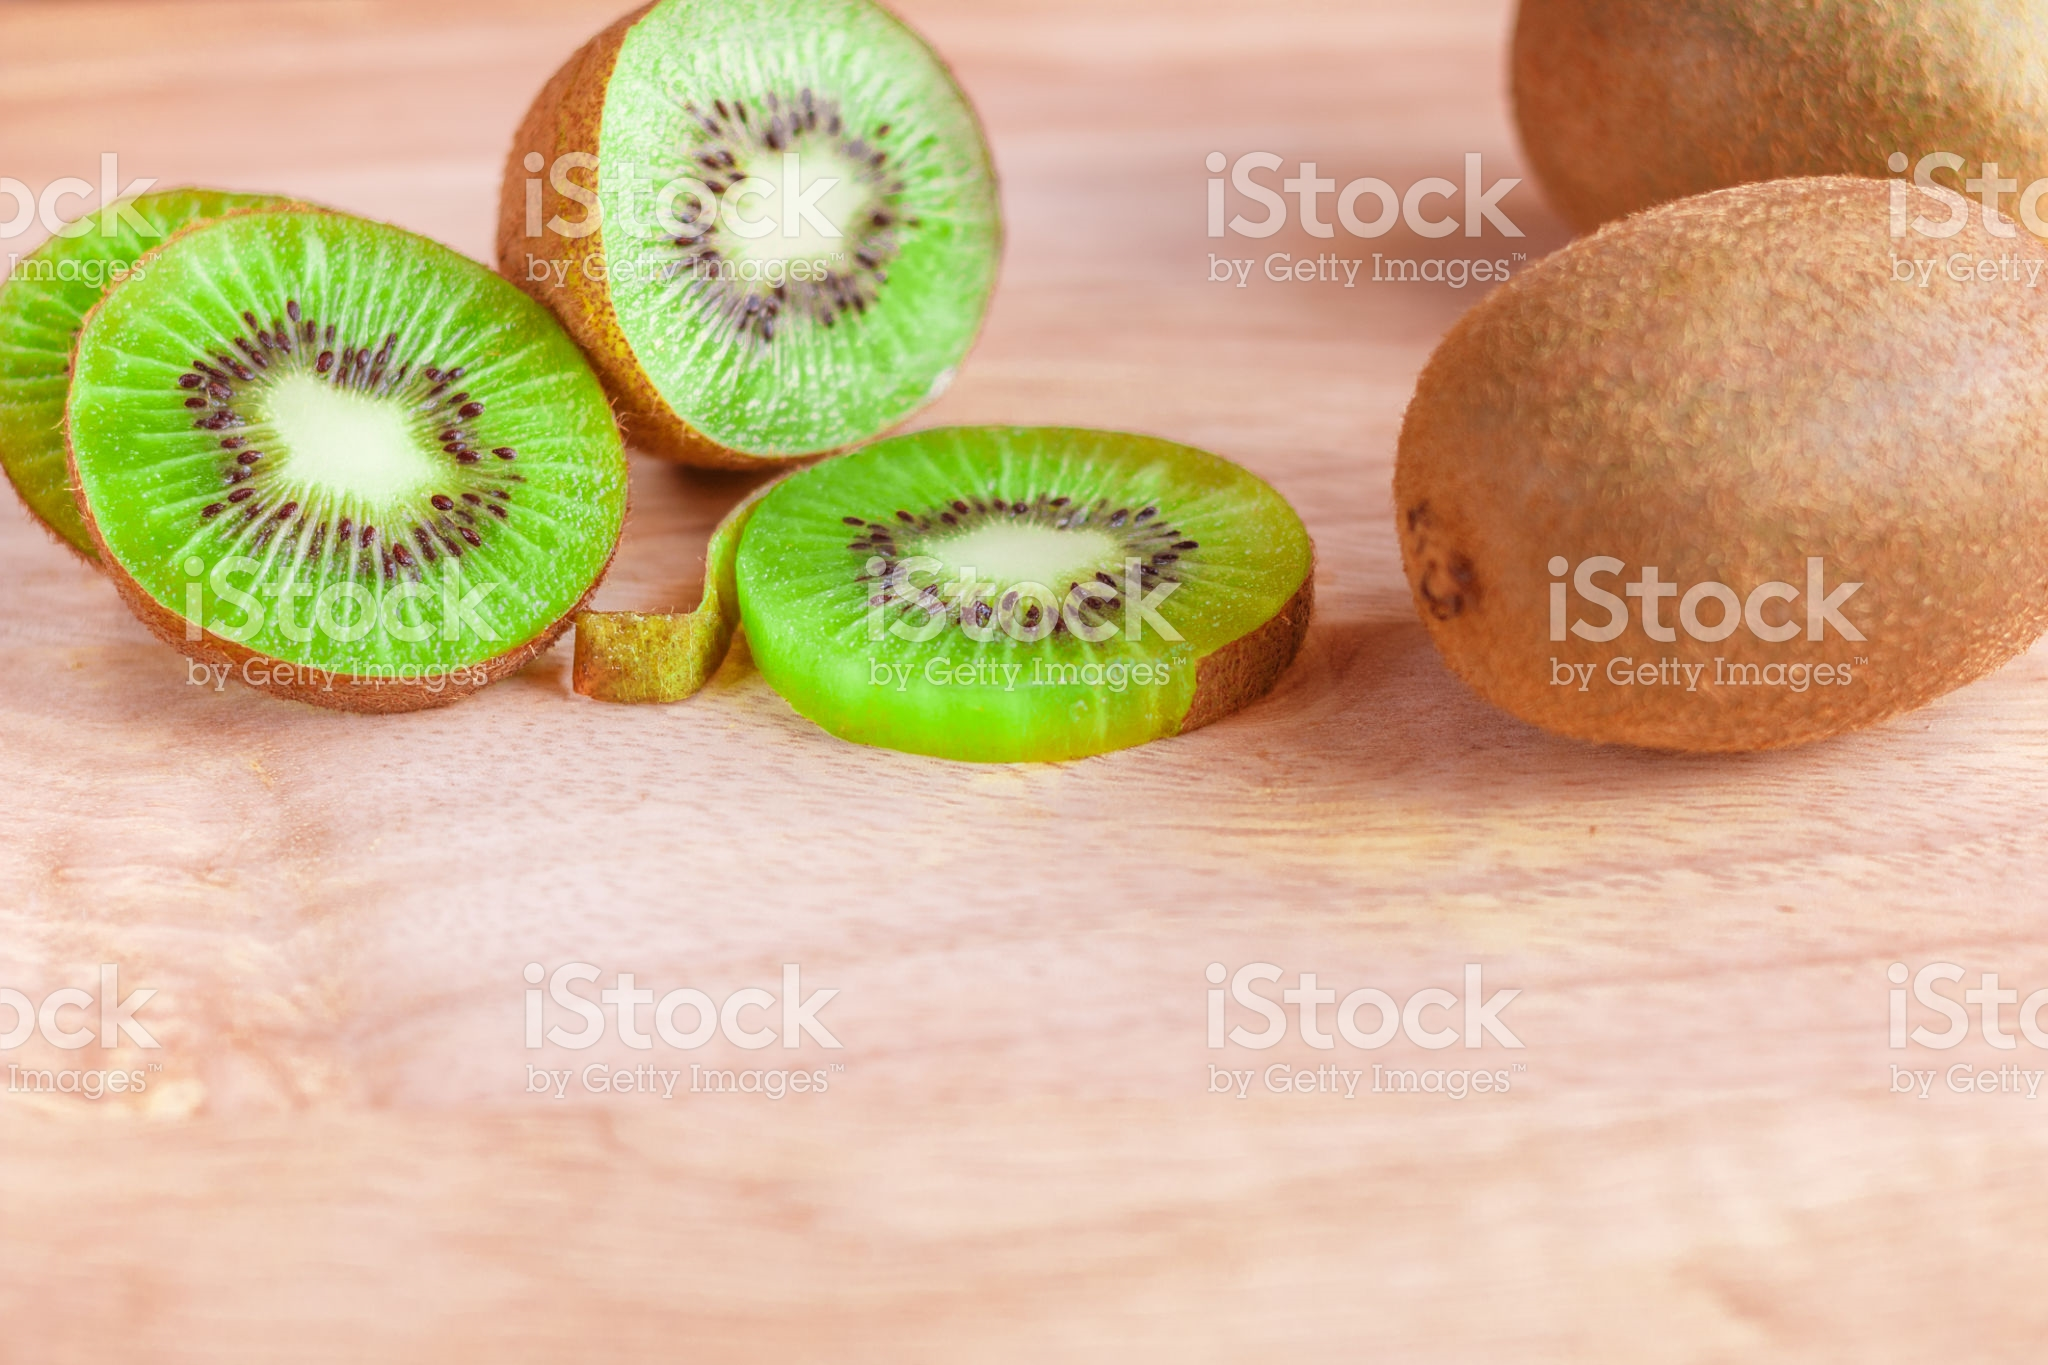 Kiwi fruit cut into pieces